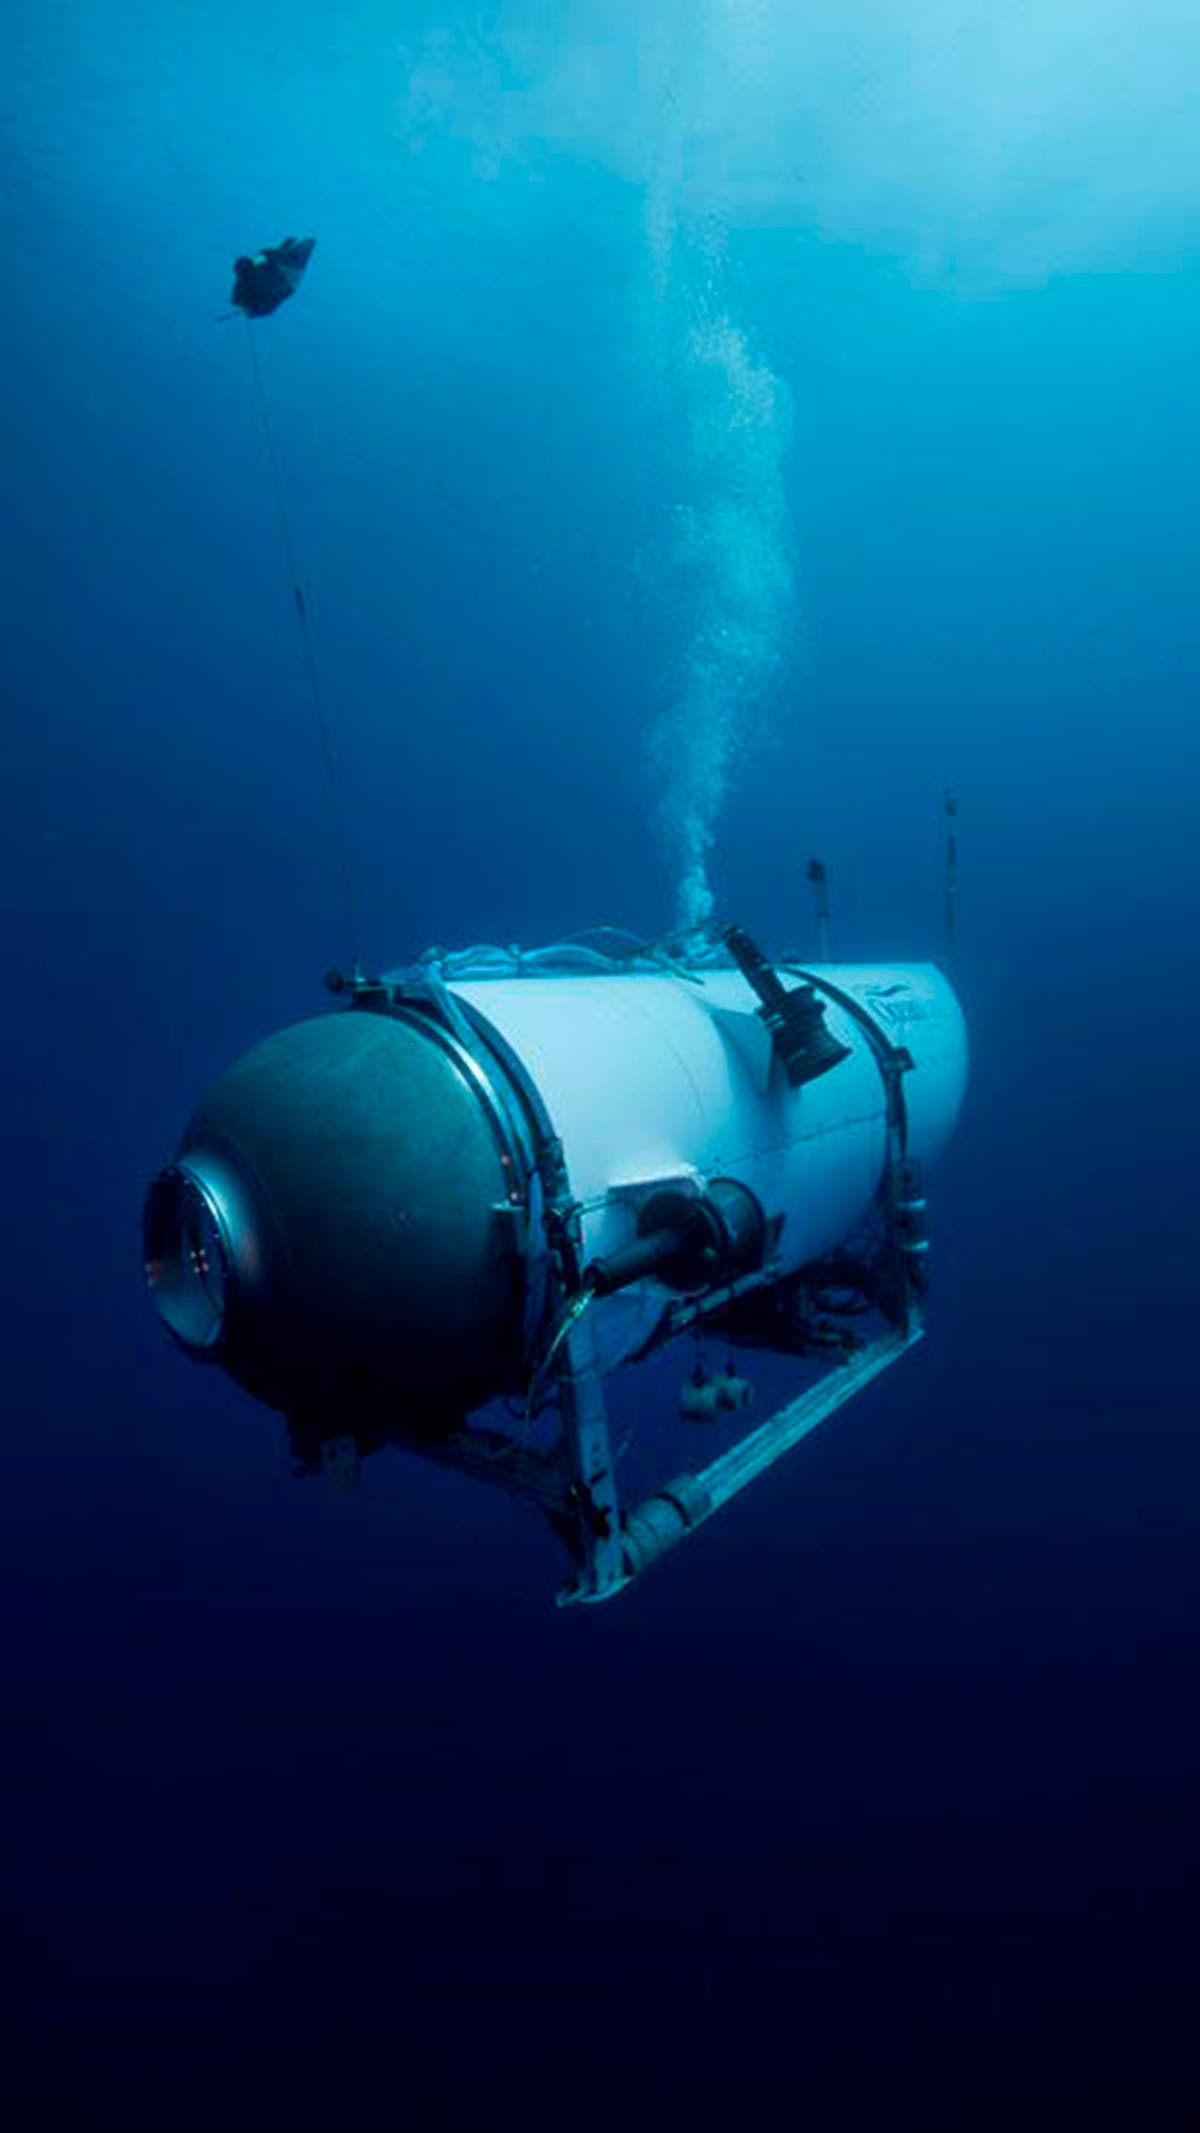 As the Titanic decays, expedition will monitor deterioration